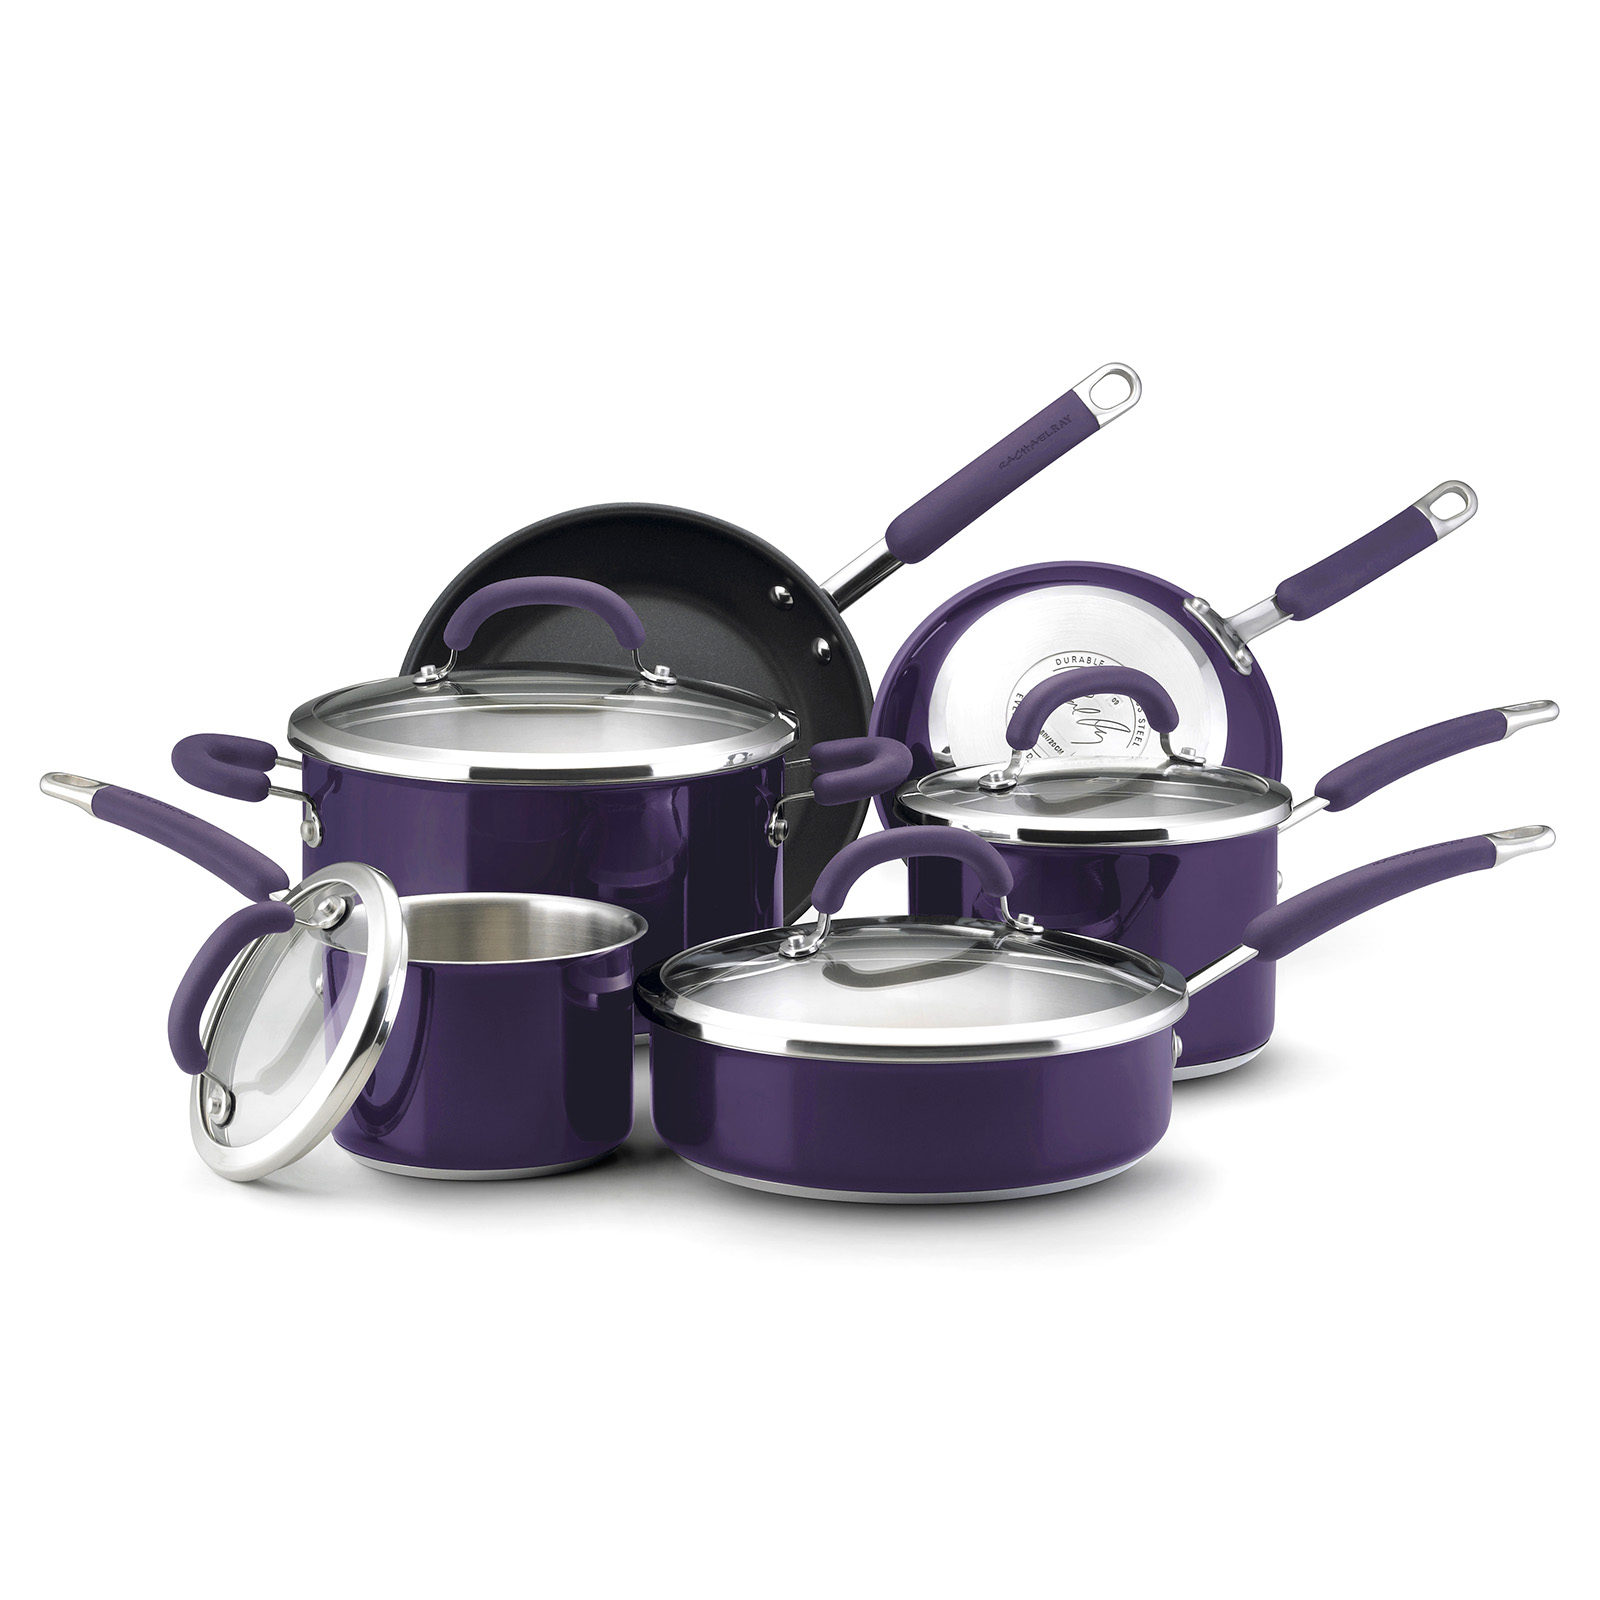 kitchen cookware sets faucet touchless rachael ray stainless steel 10 pc set eggplant